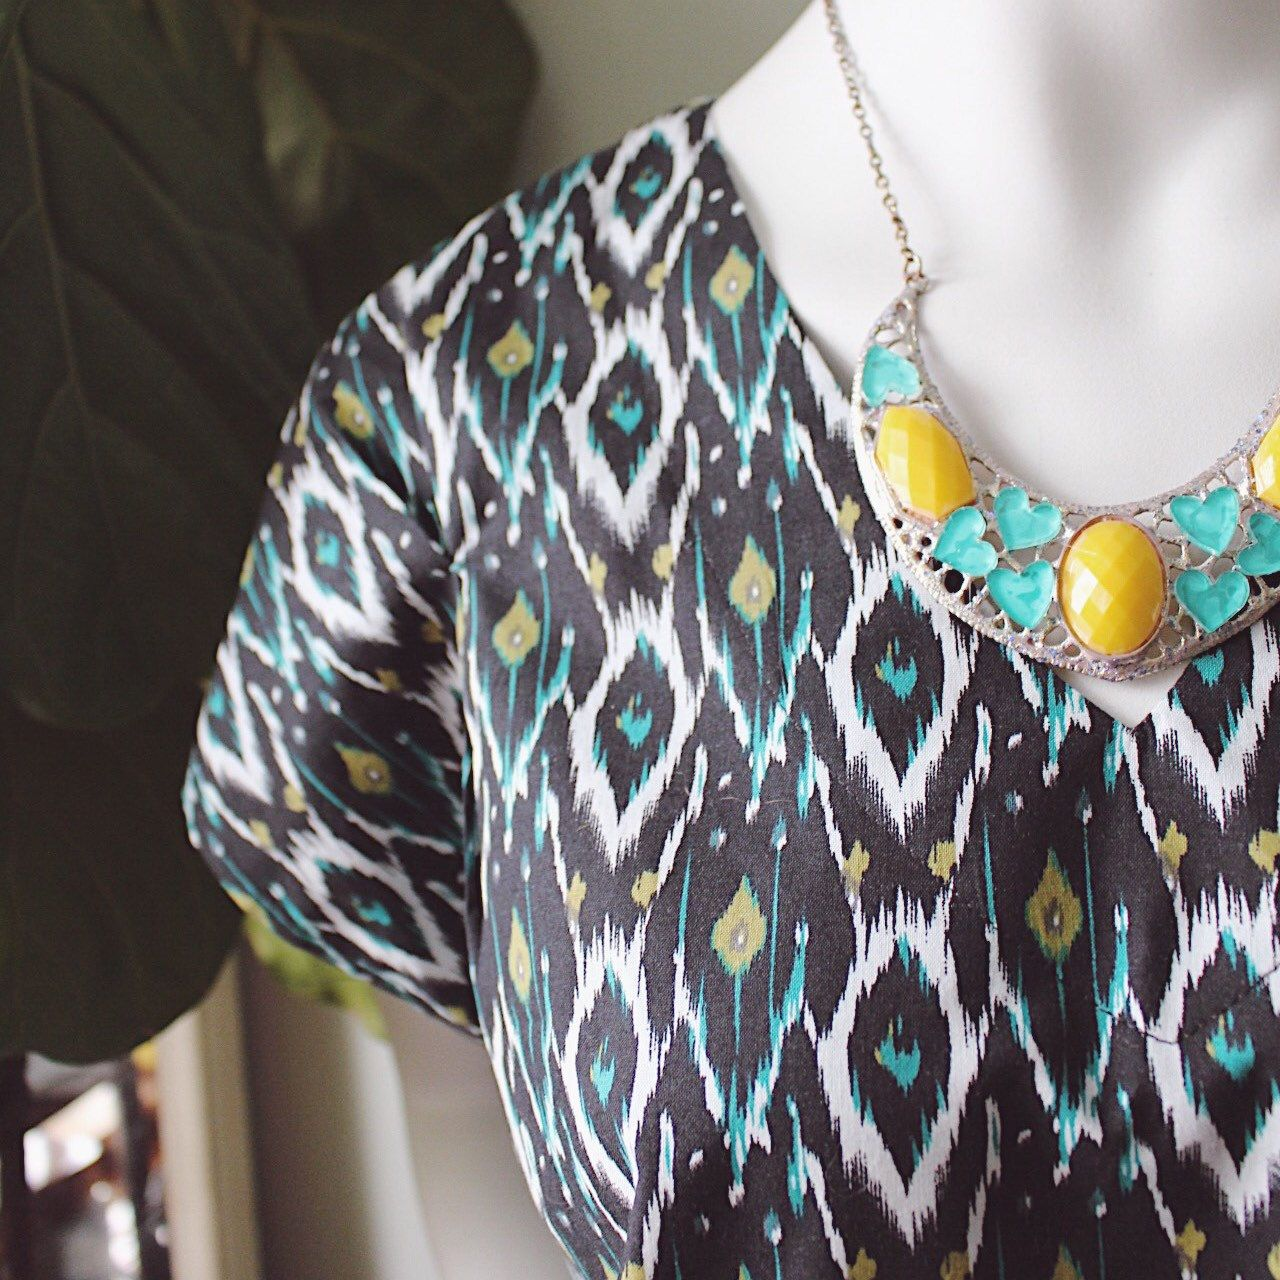 Get the jump on this bold beauty! #DeepTeal